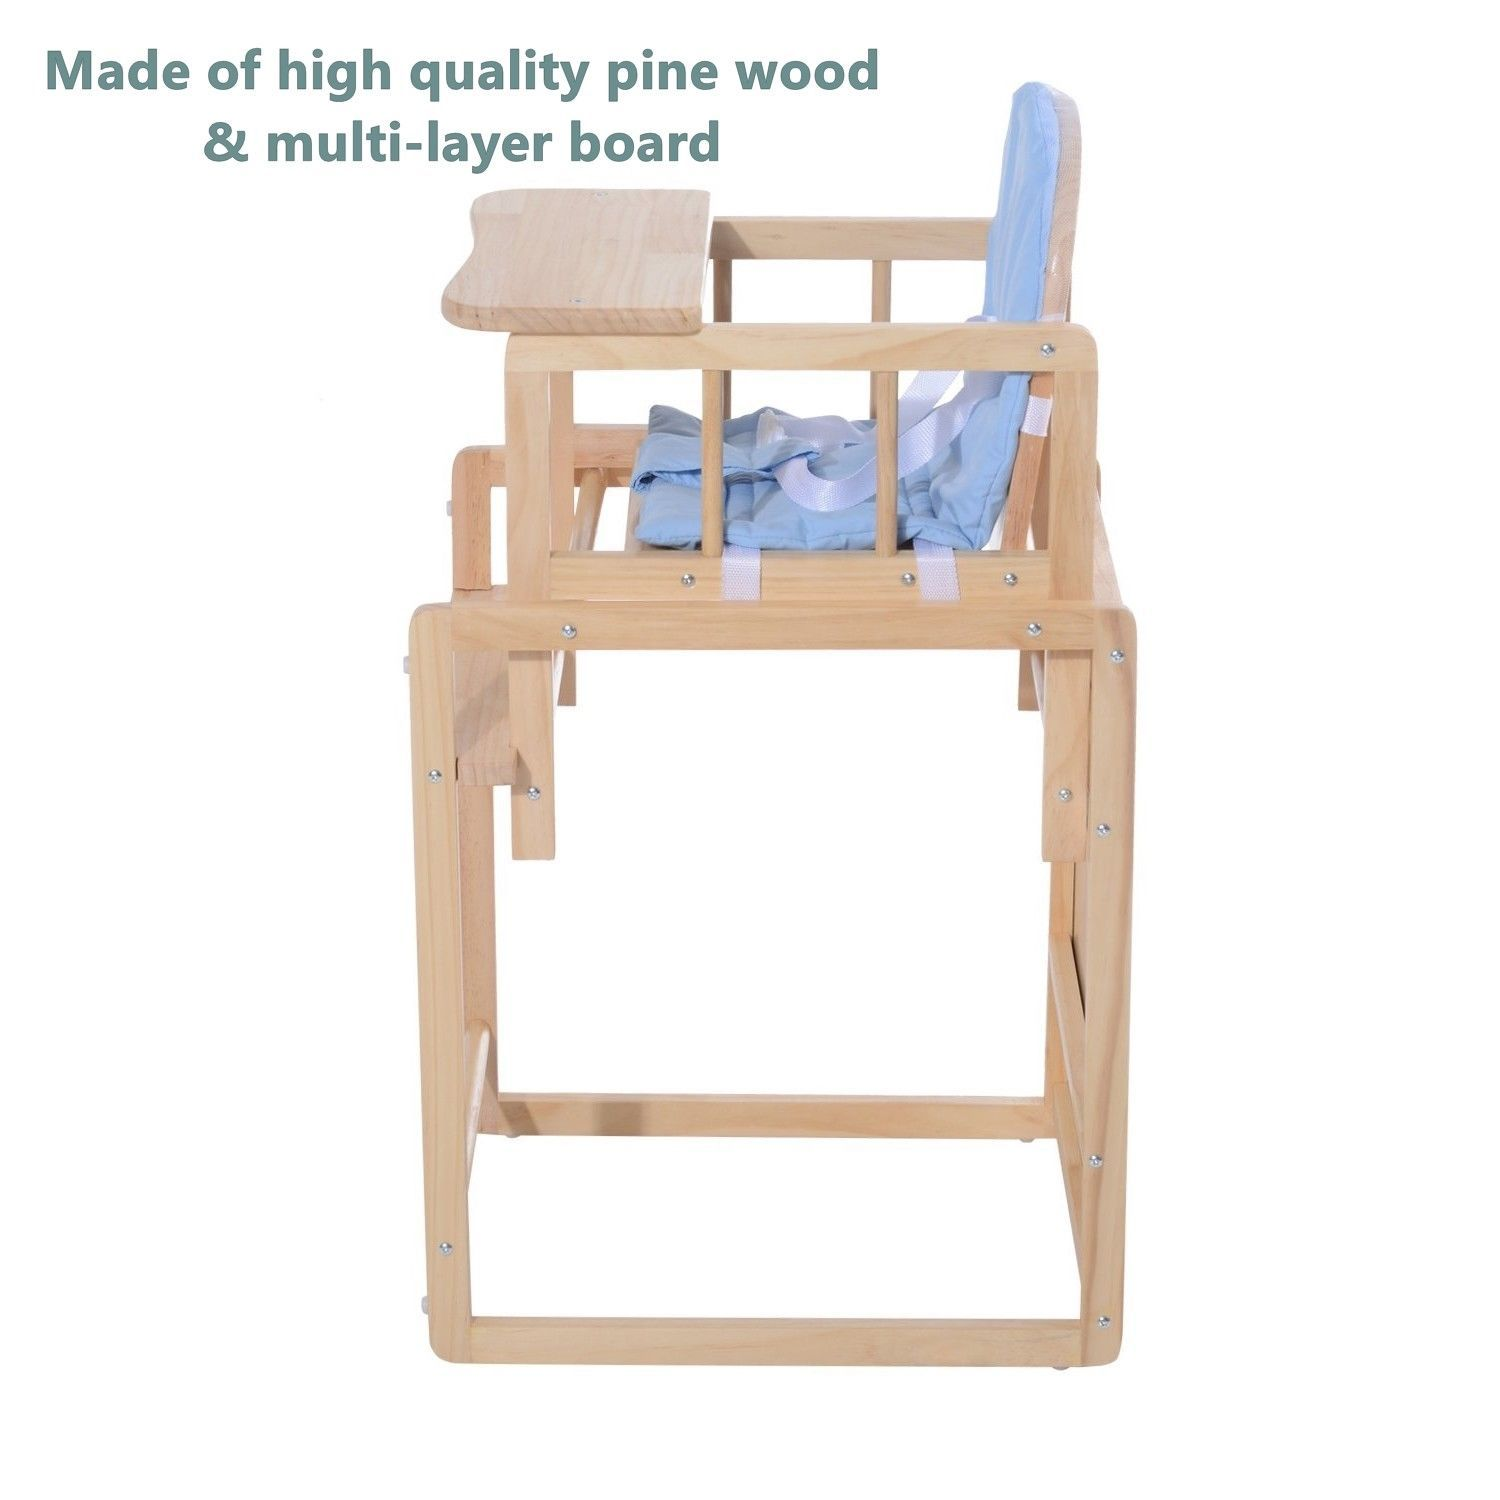 Awe Inspiring 2 In 1 Baby Wooden Feeding High Chair And 50 Similar Items Caraccident5 Cool Chair Designs And Ideas Caraccident5Info